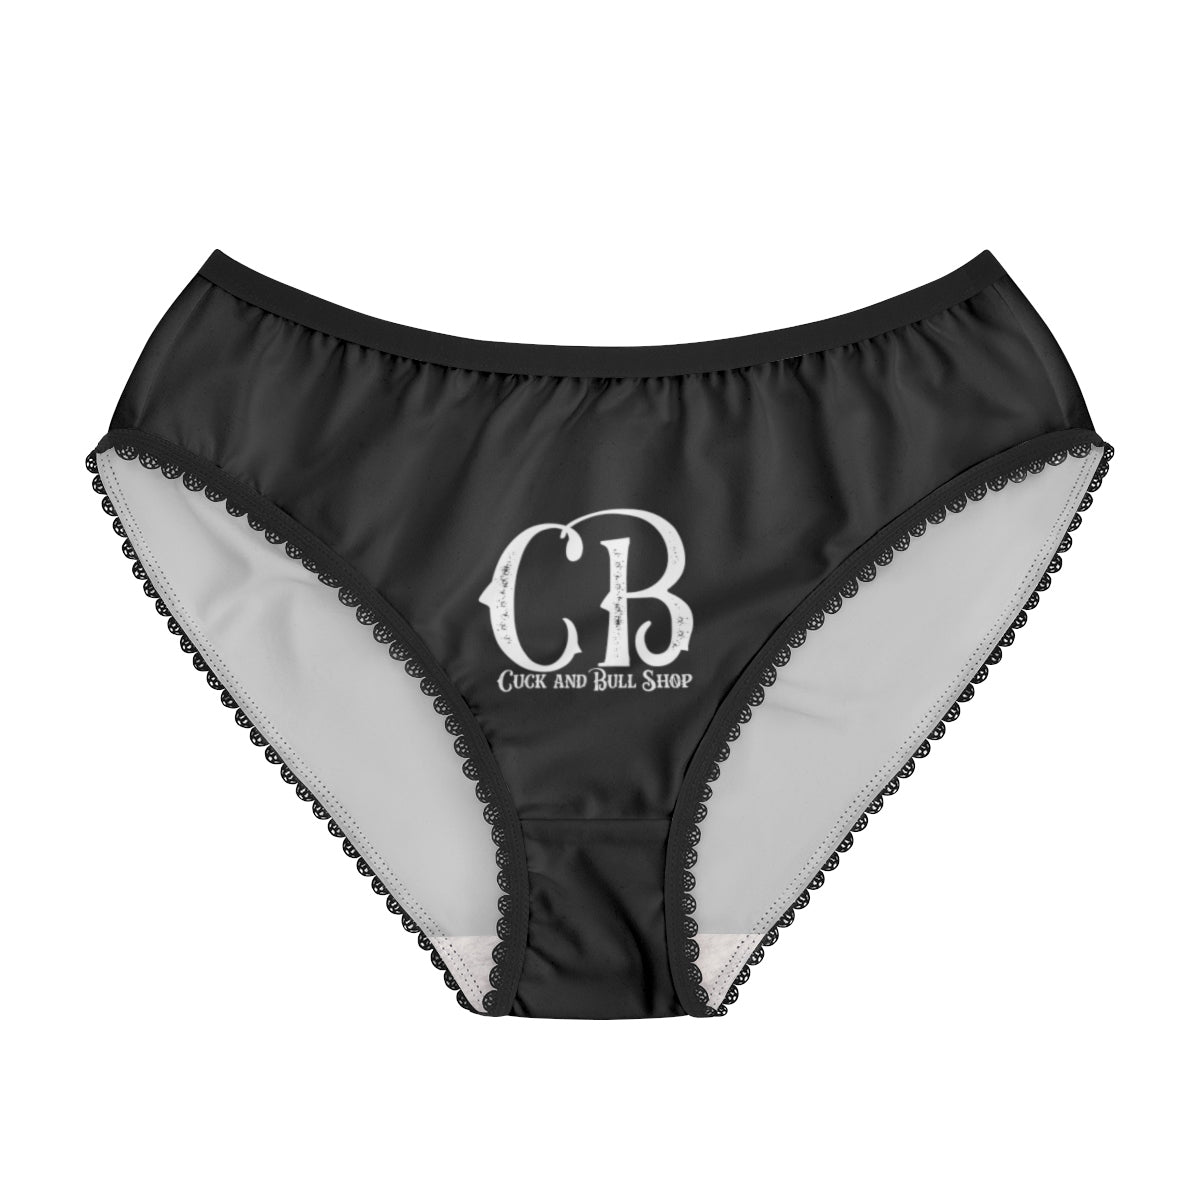 SUB Submissive BDSM Women's Briefs